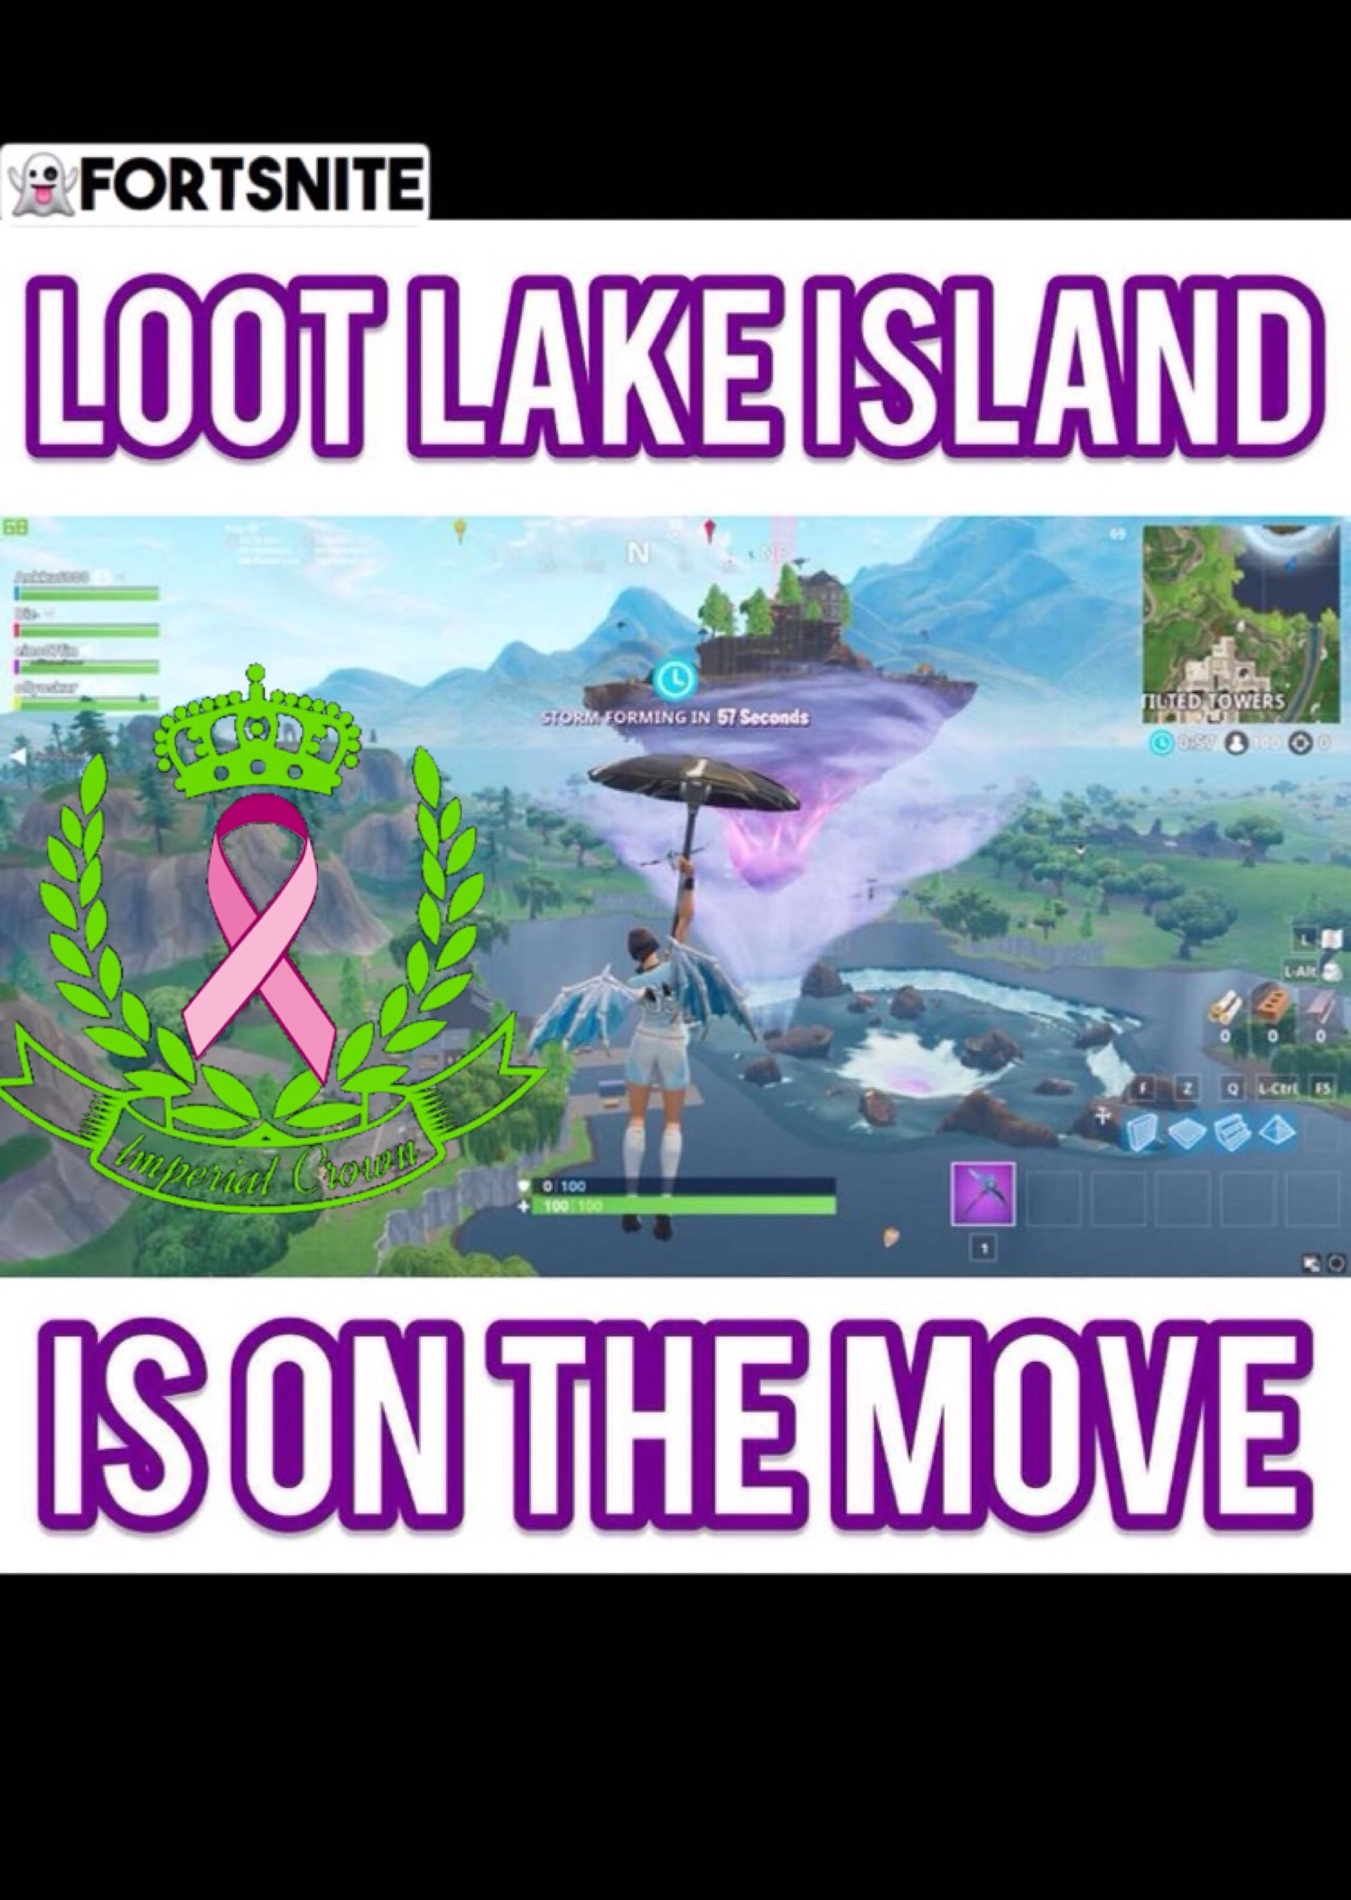 Loot lake island is on the move